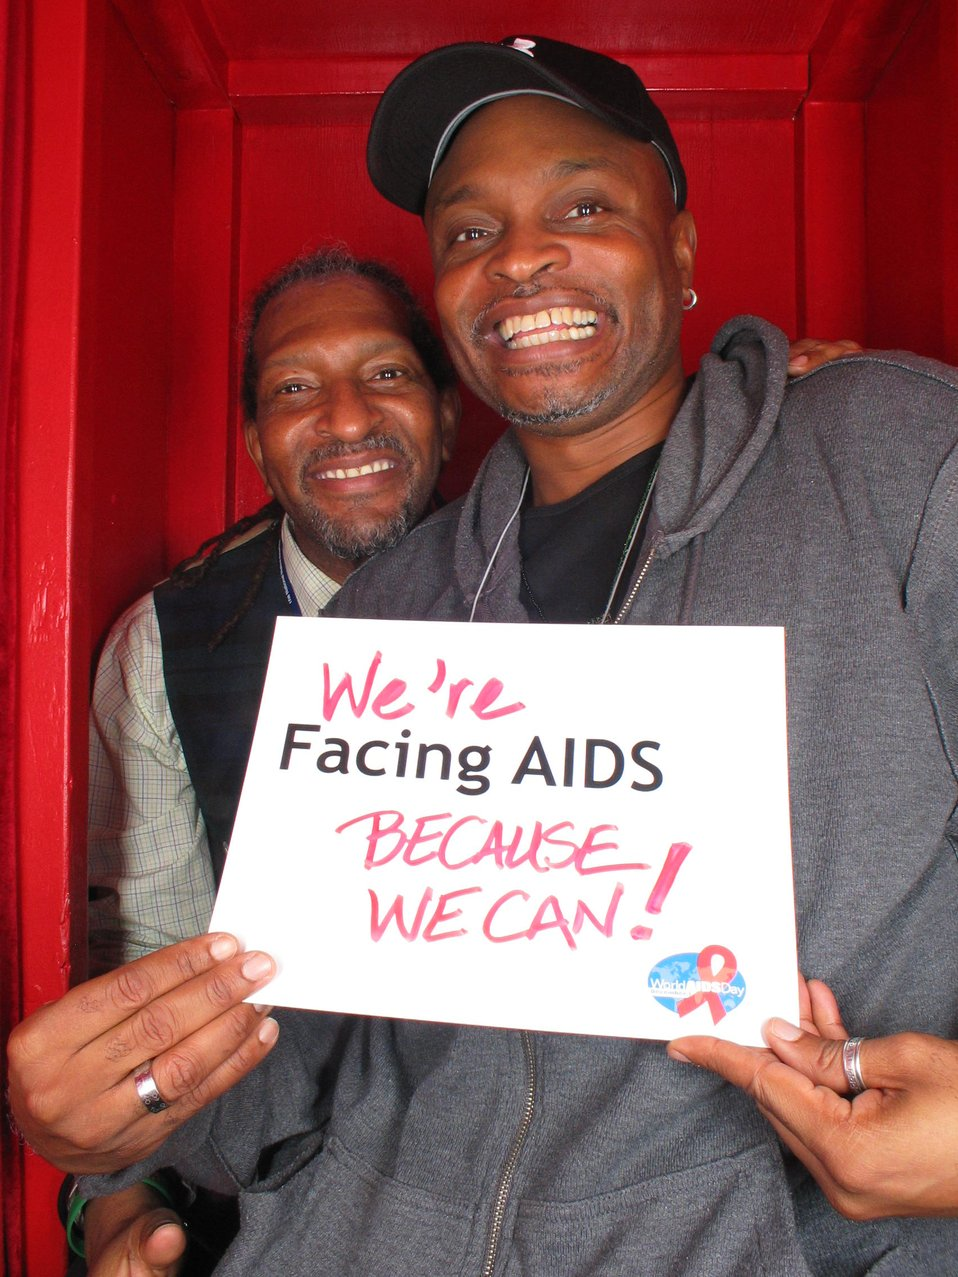 We're Facing AIDS because we can.